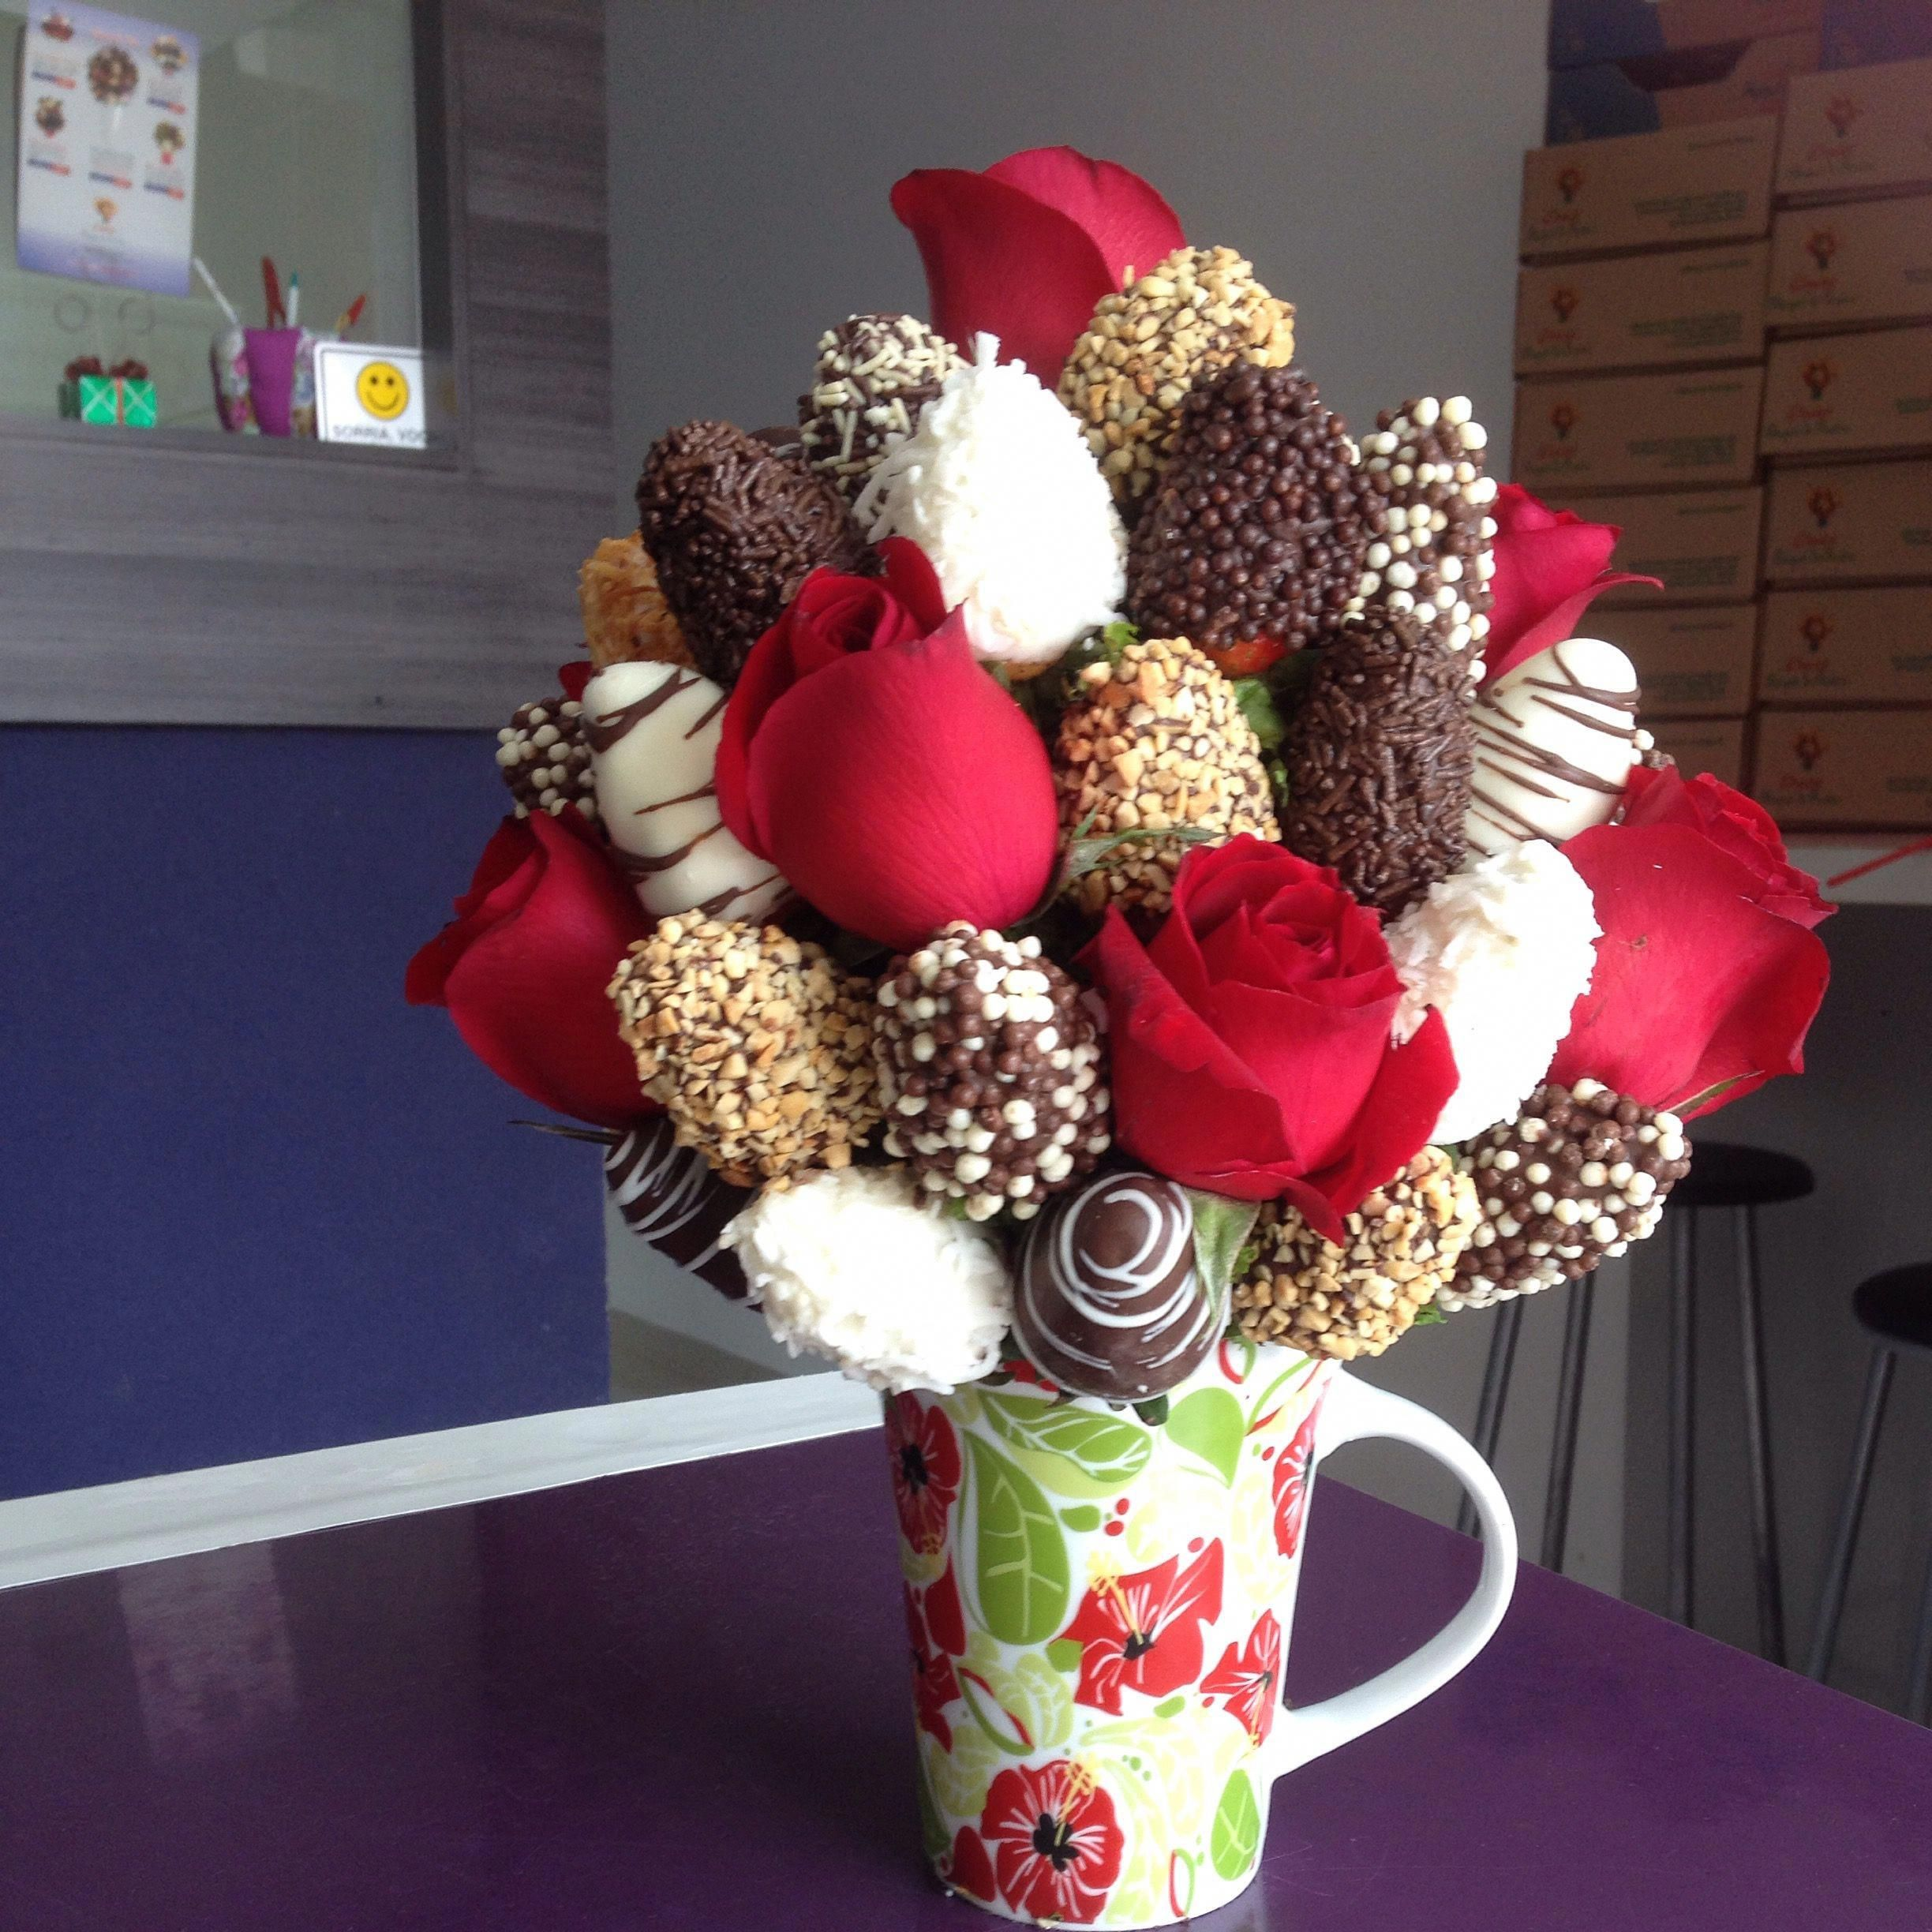 Hot Chocolate And Whipped Cream With Coconut Clean Eating Snacks Recipe Edible Fruit Arrangements Chocolate Strawberries Bouquet Chocolate Covered Strawberries Bouquet